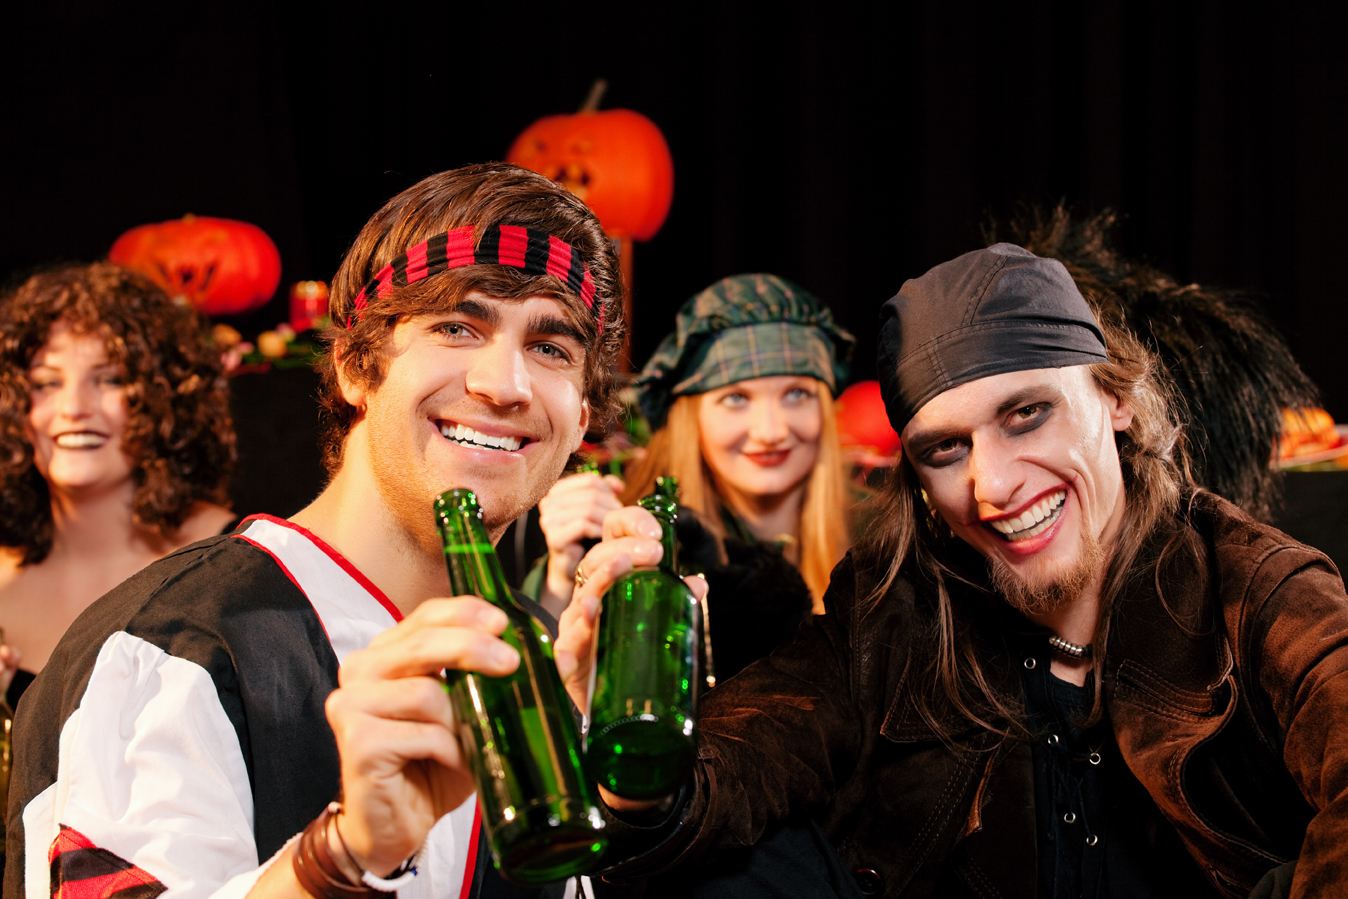 Get some brews and meet some babes this Halloween! (Photo: Shutterstock)